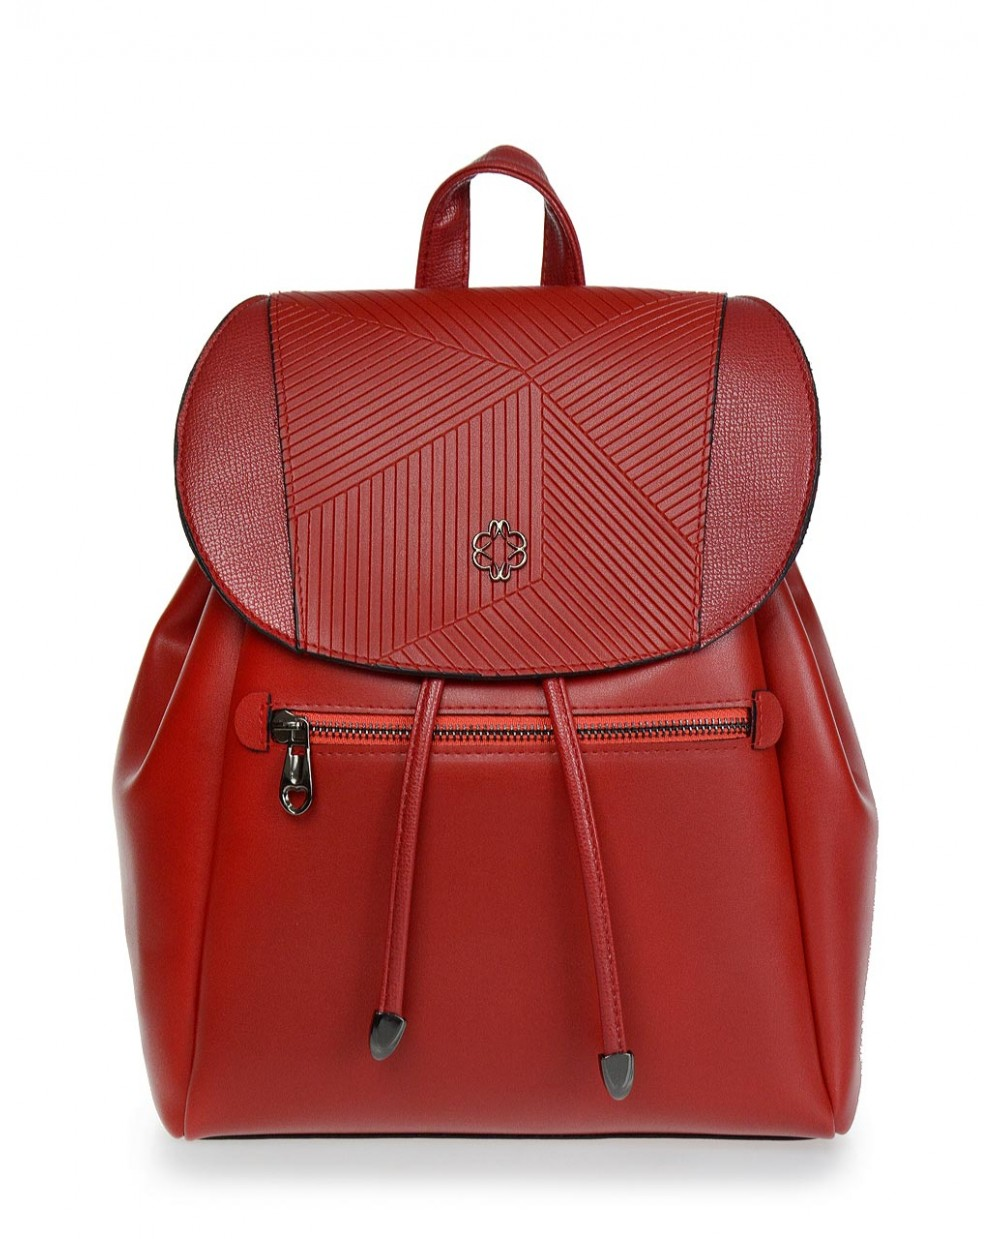 BACKPACK 5058